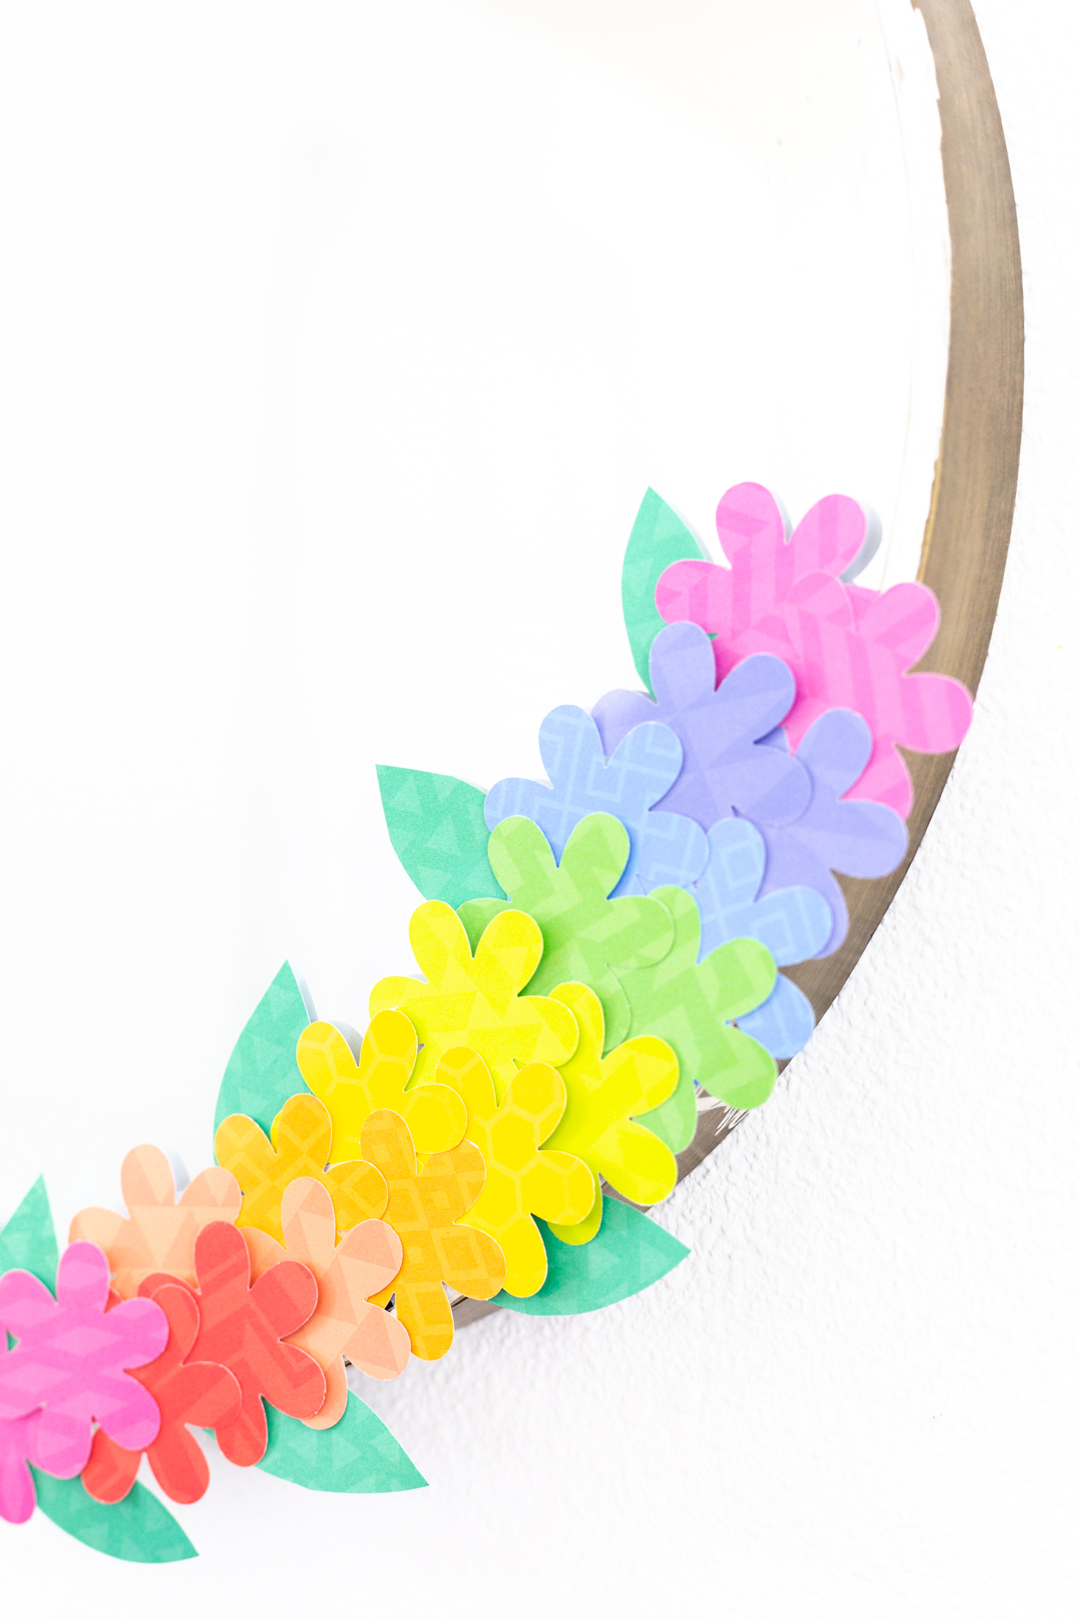 flower decorations made with stencils